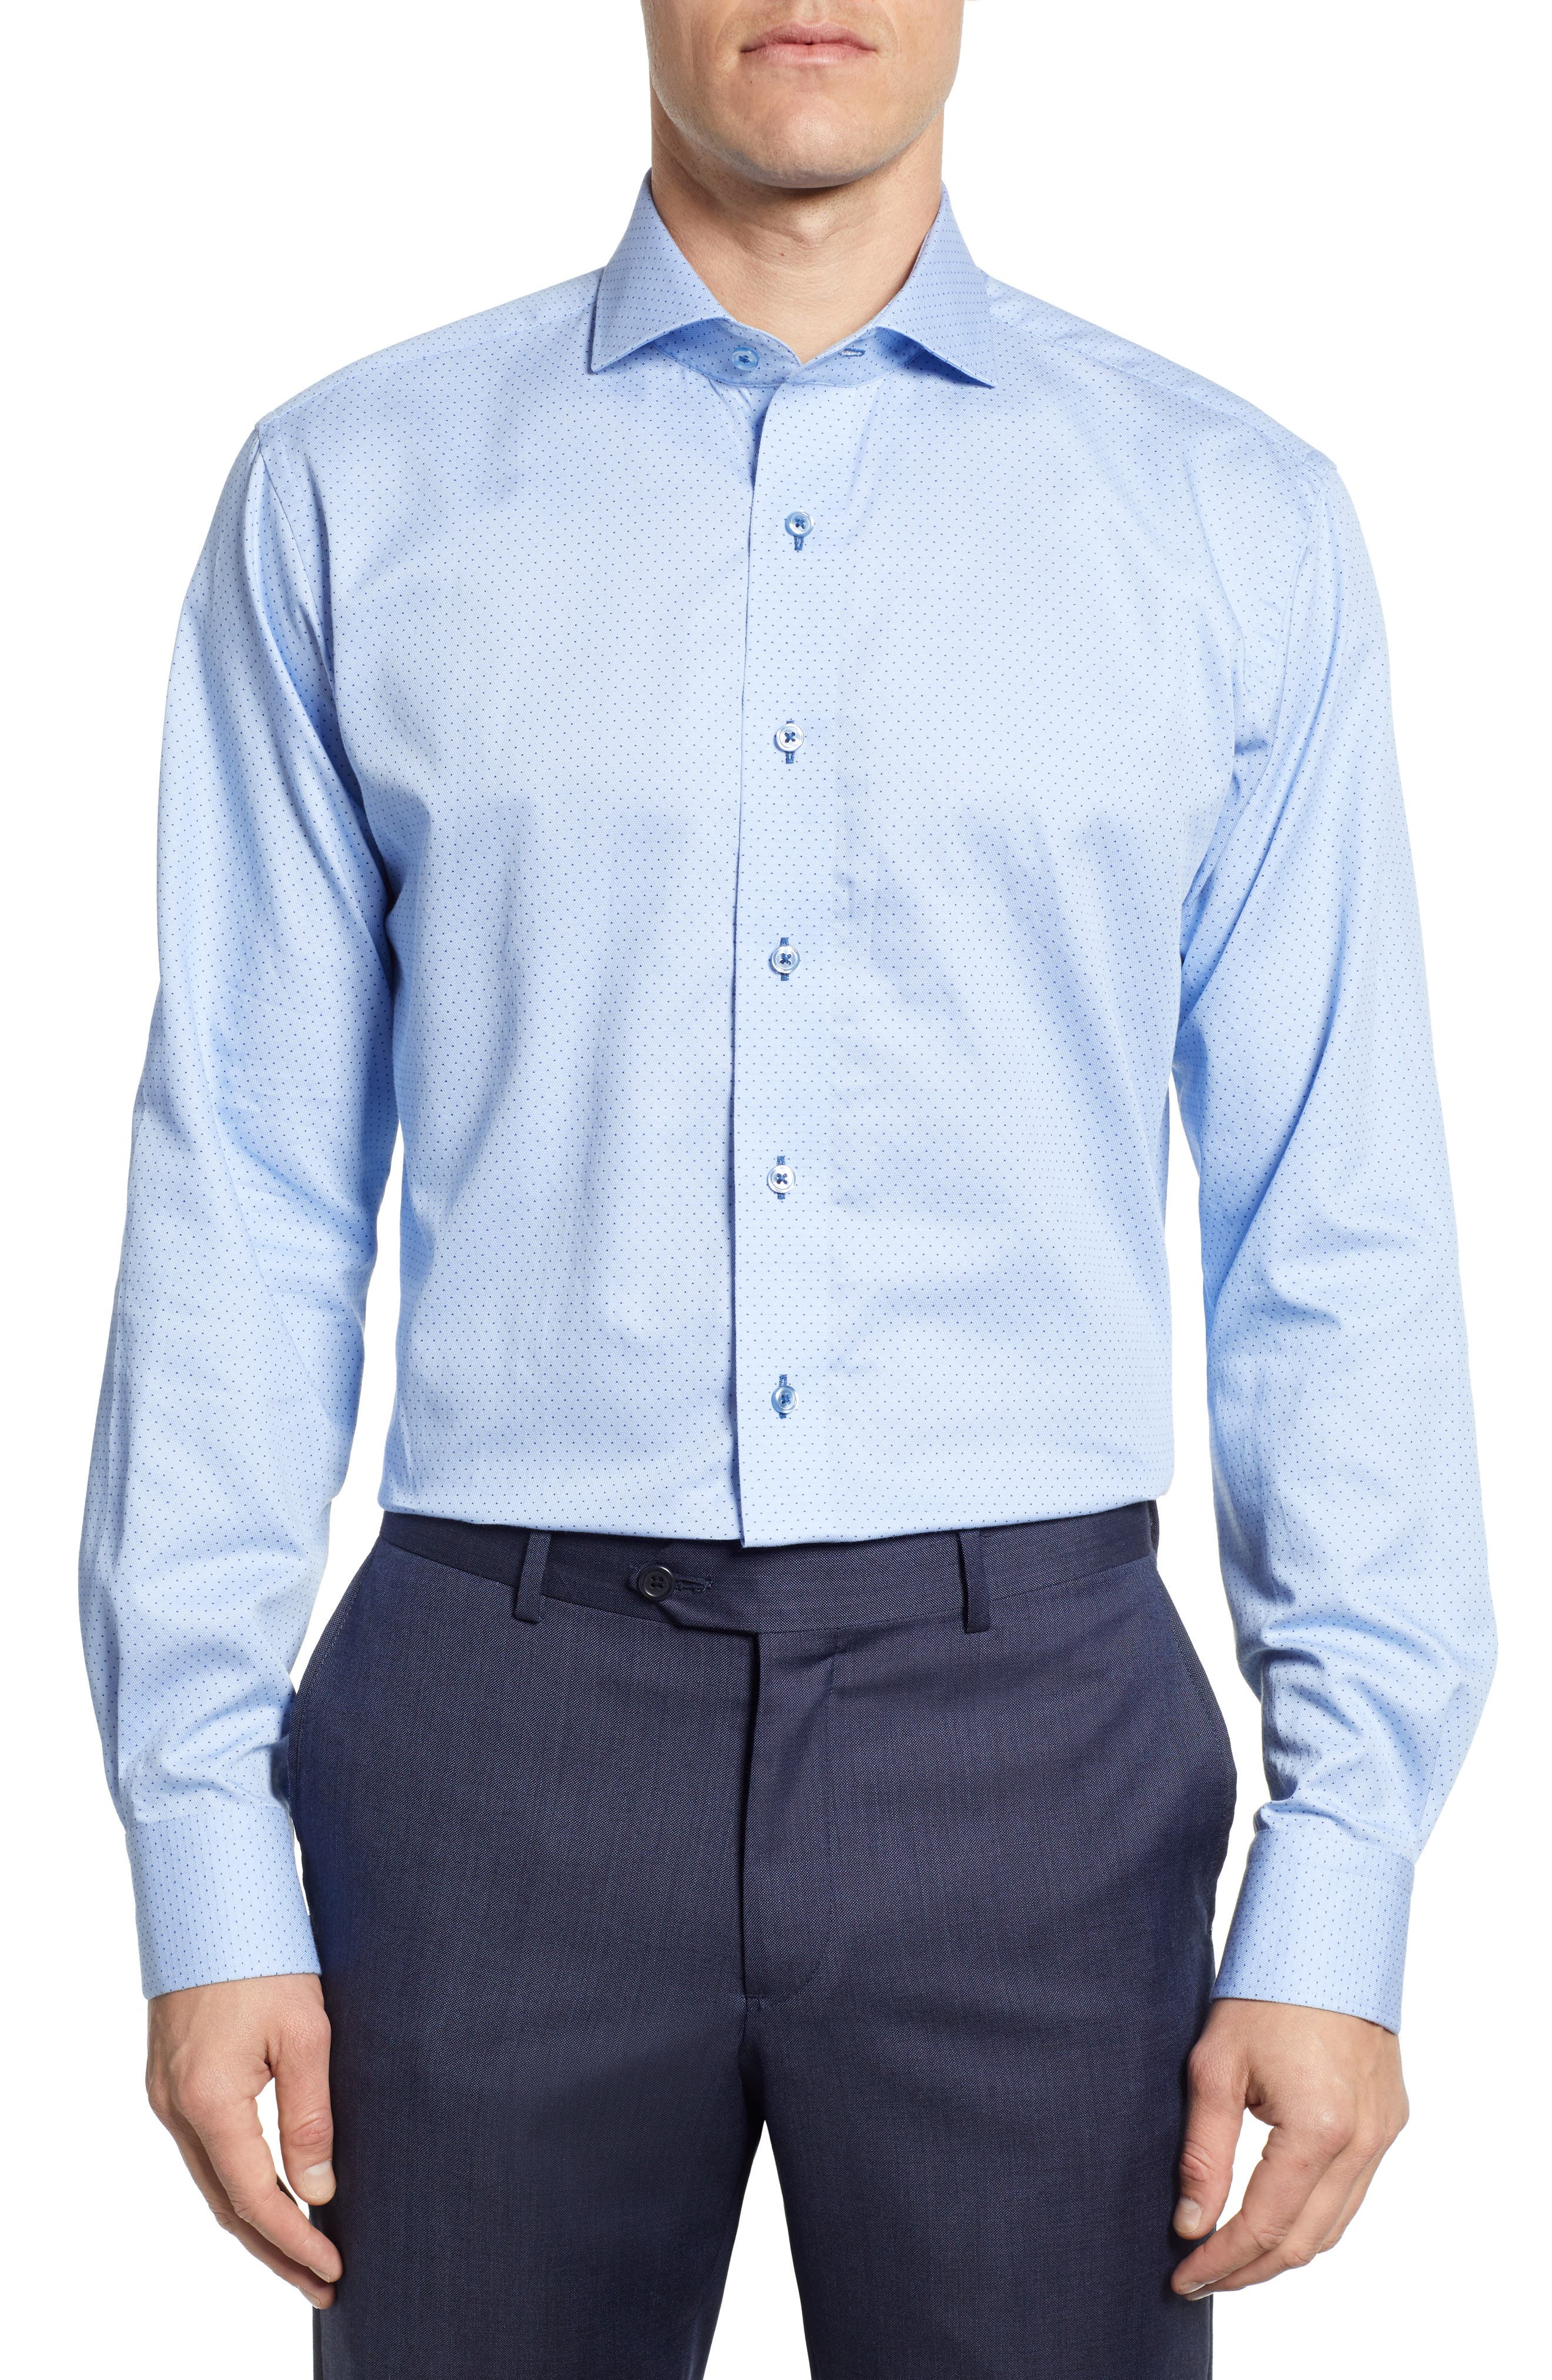 LORENZO UOMO Trim Fit Dot Dress Shirt, Main, color, LT BLUE